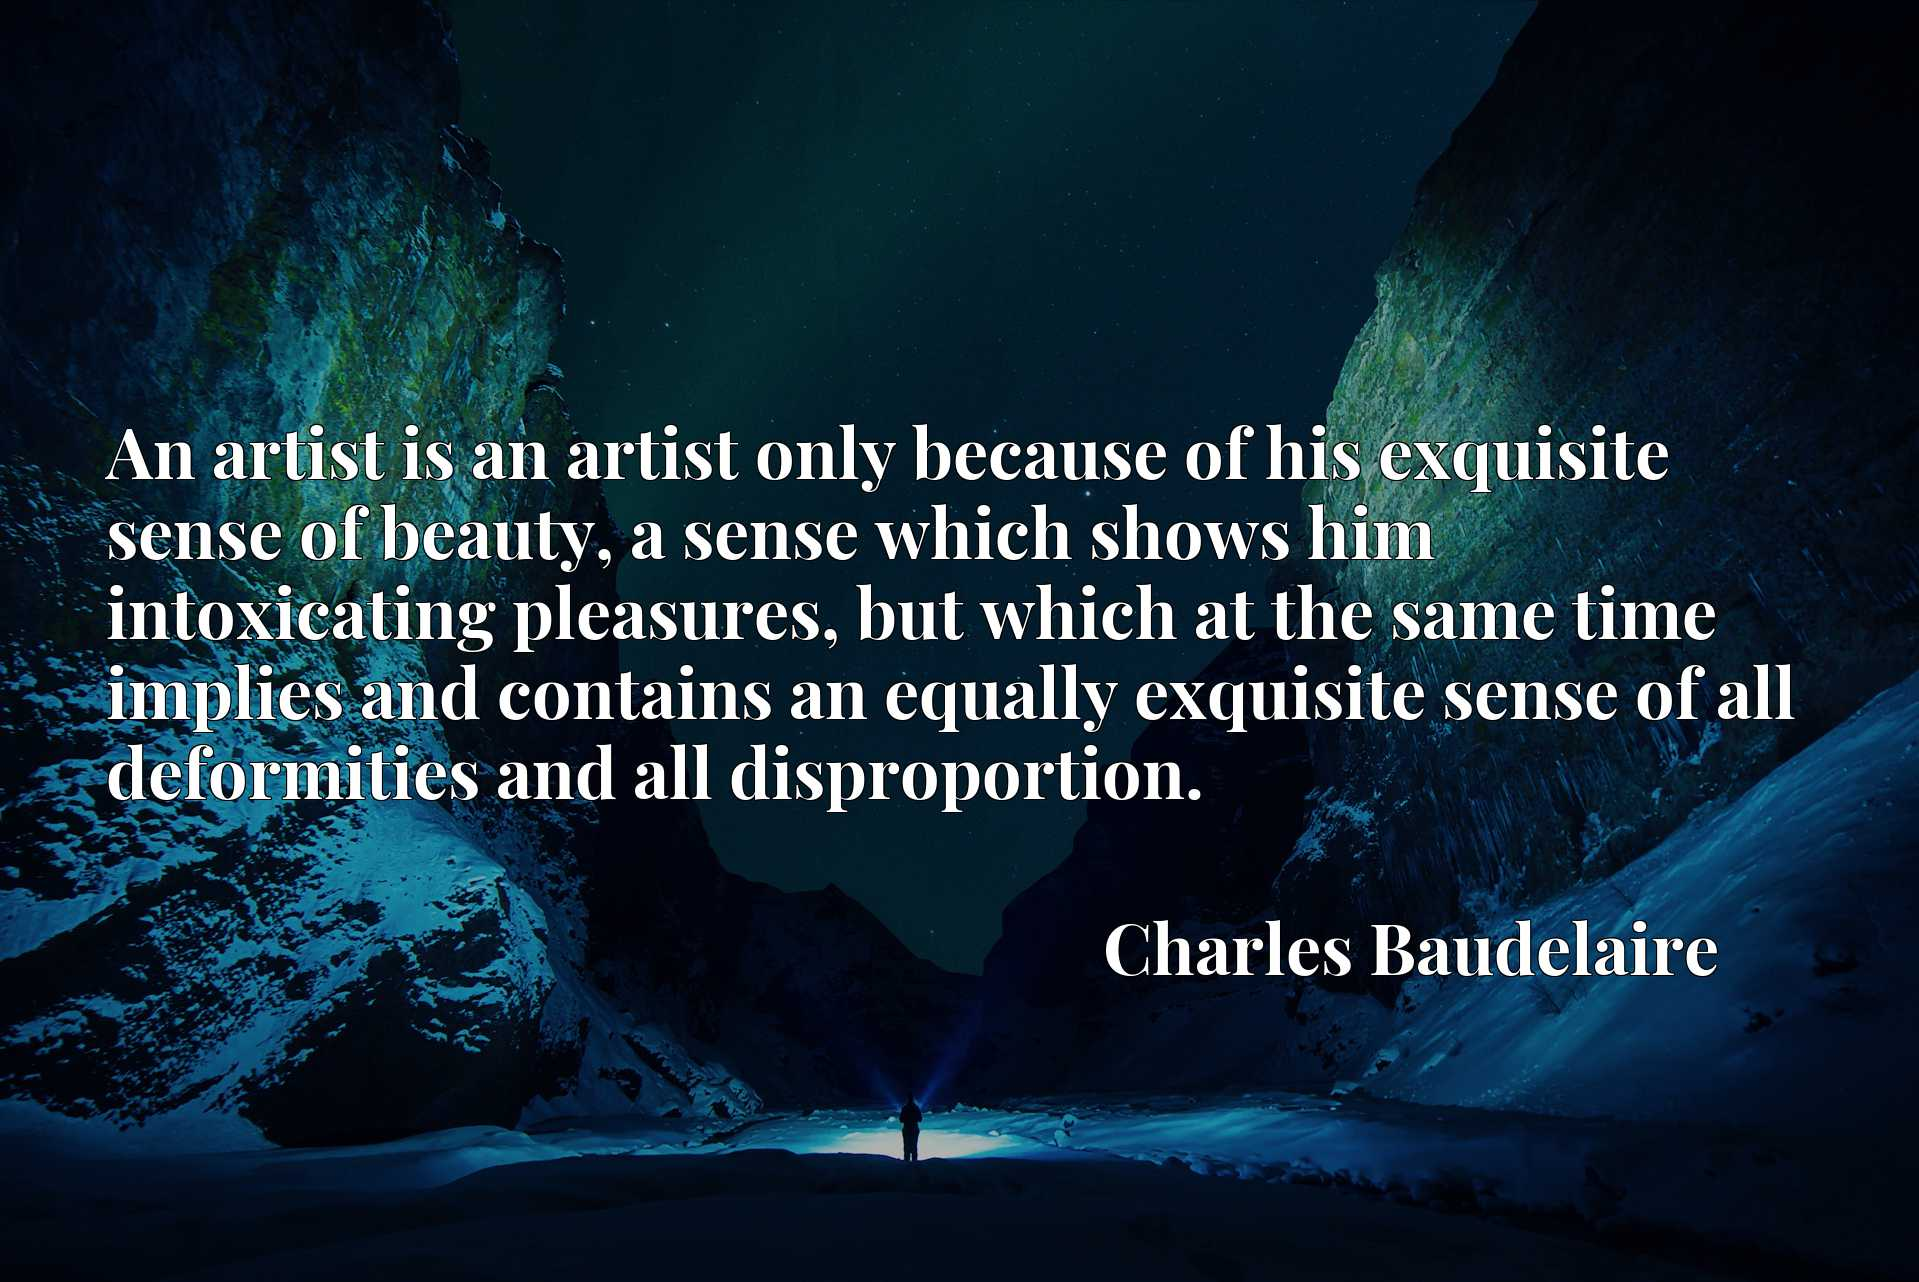 An artist is an artist only because of his exquisite sense of beauty, a sense which shows him intoxicating pleasures, but which at the same time implies and contains an equally exquisite sense of all deformities and all disproportion.